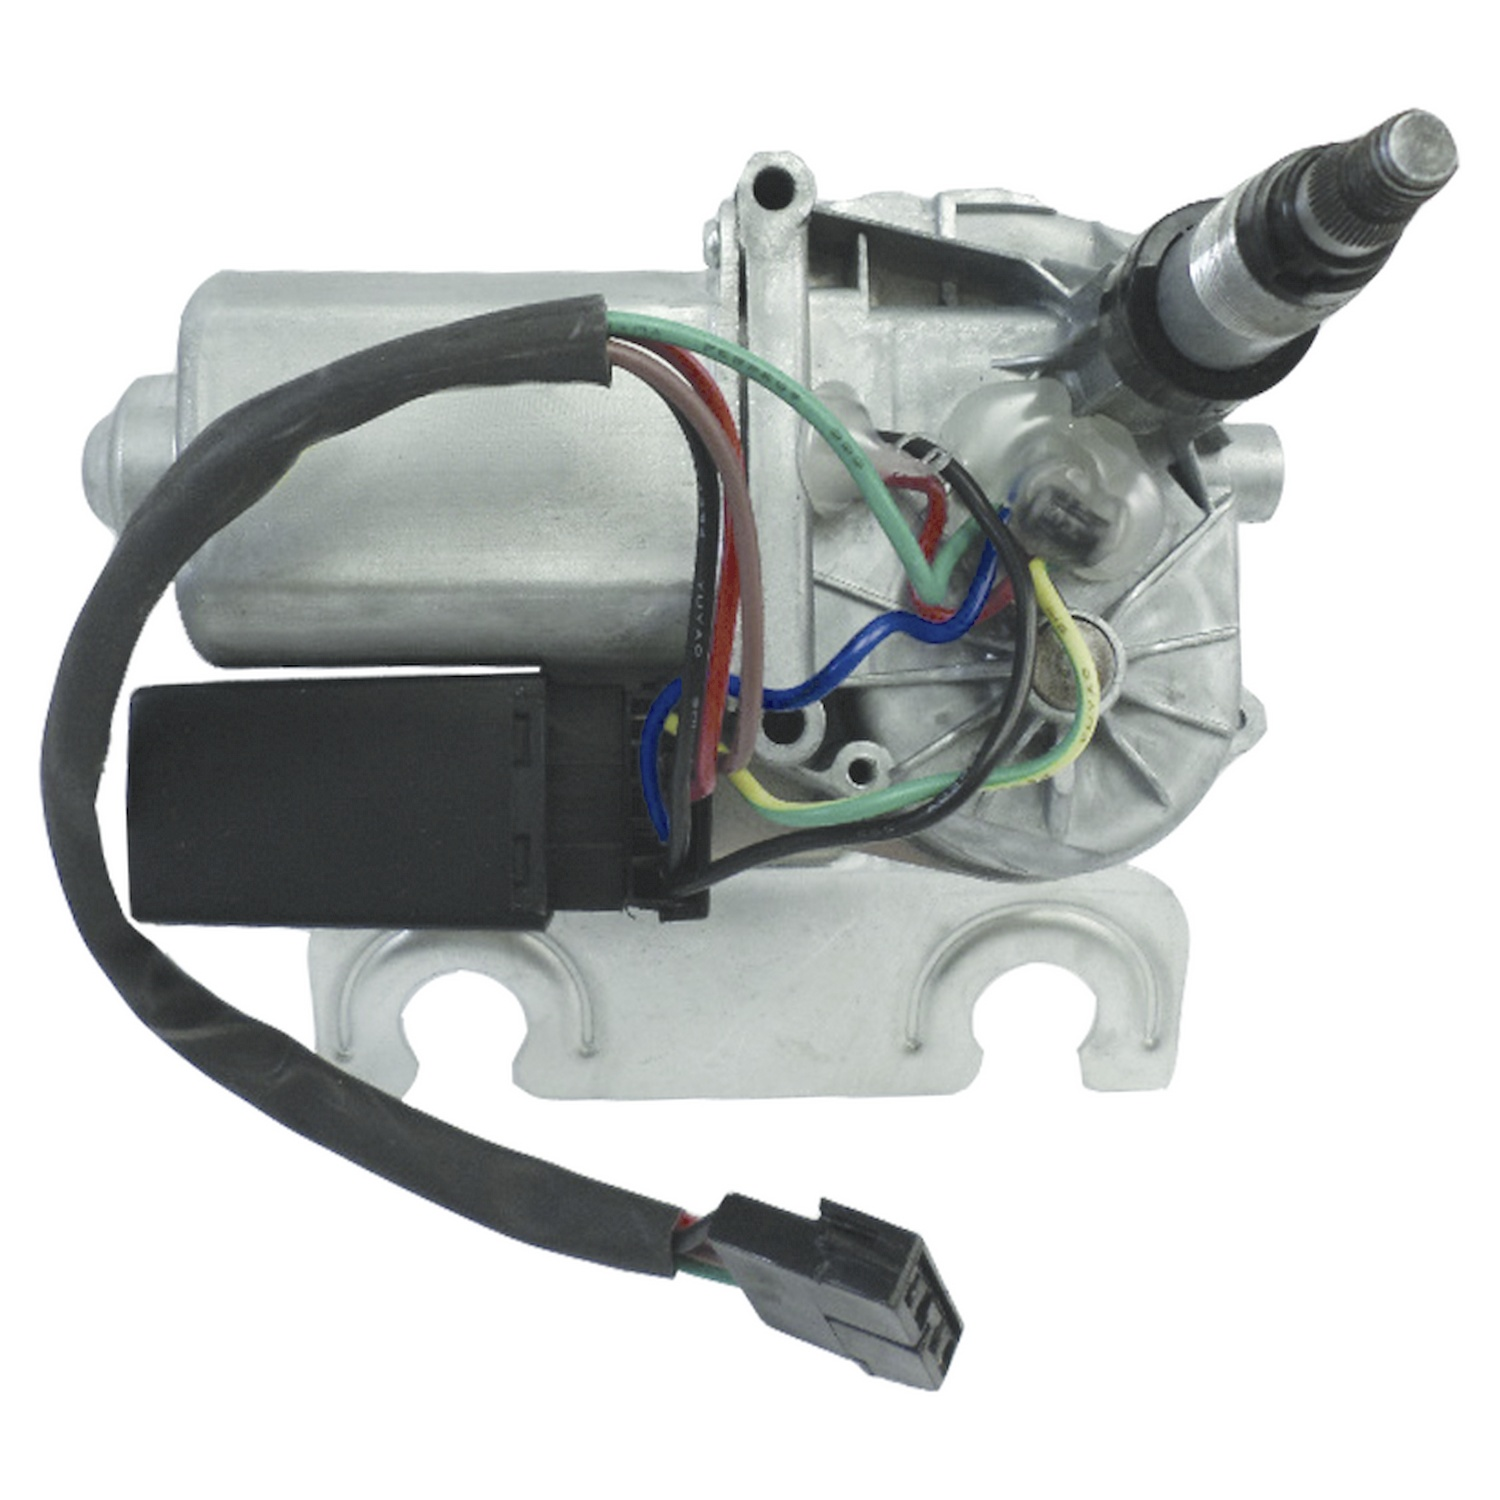 New Rear Wiper Motor Fits Jeep Cherokee 1997